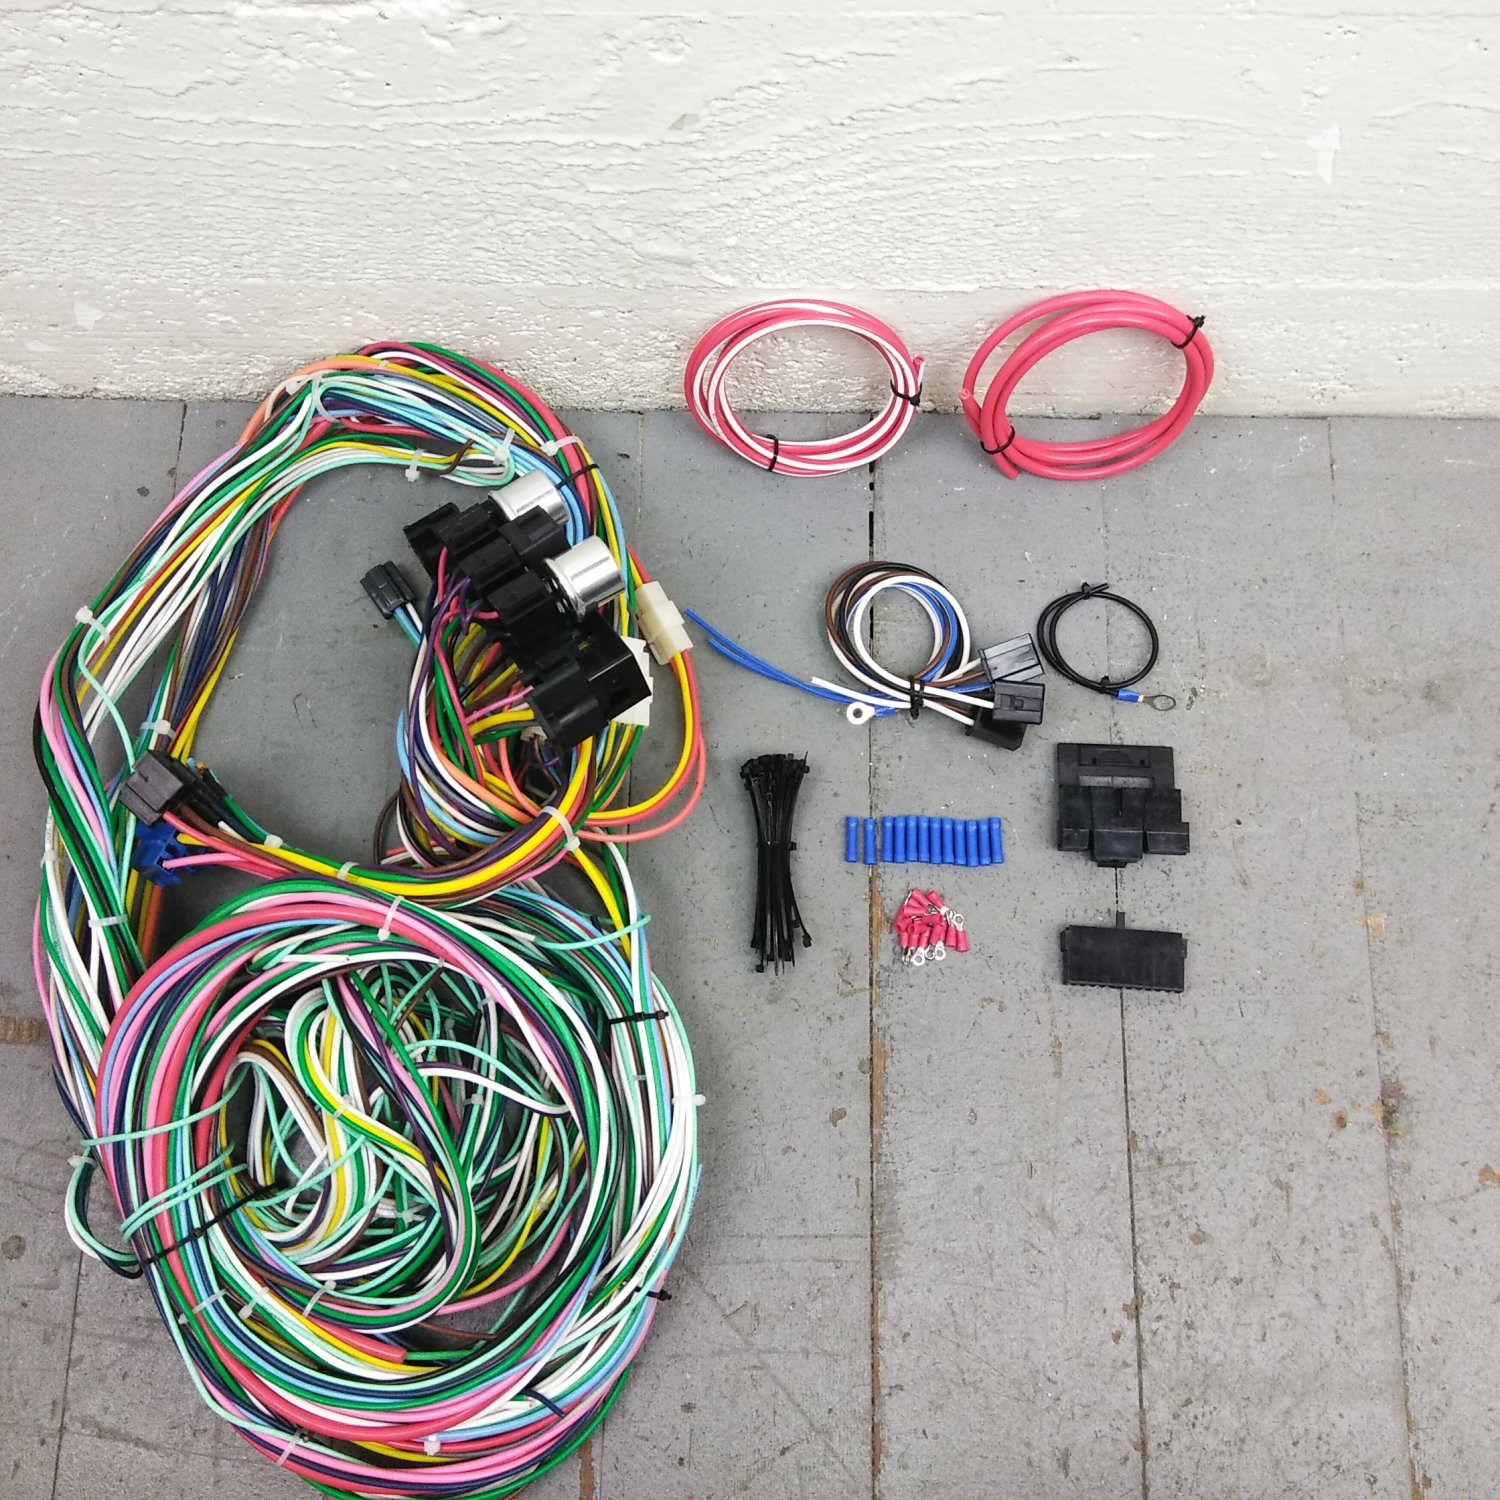 1948 Chevy Wiring Harness Electrical Diagrams 1941 Ford Car Wire Upgrade Kit Fits Painless 2004 Tahoe